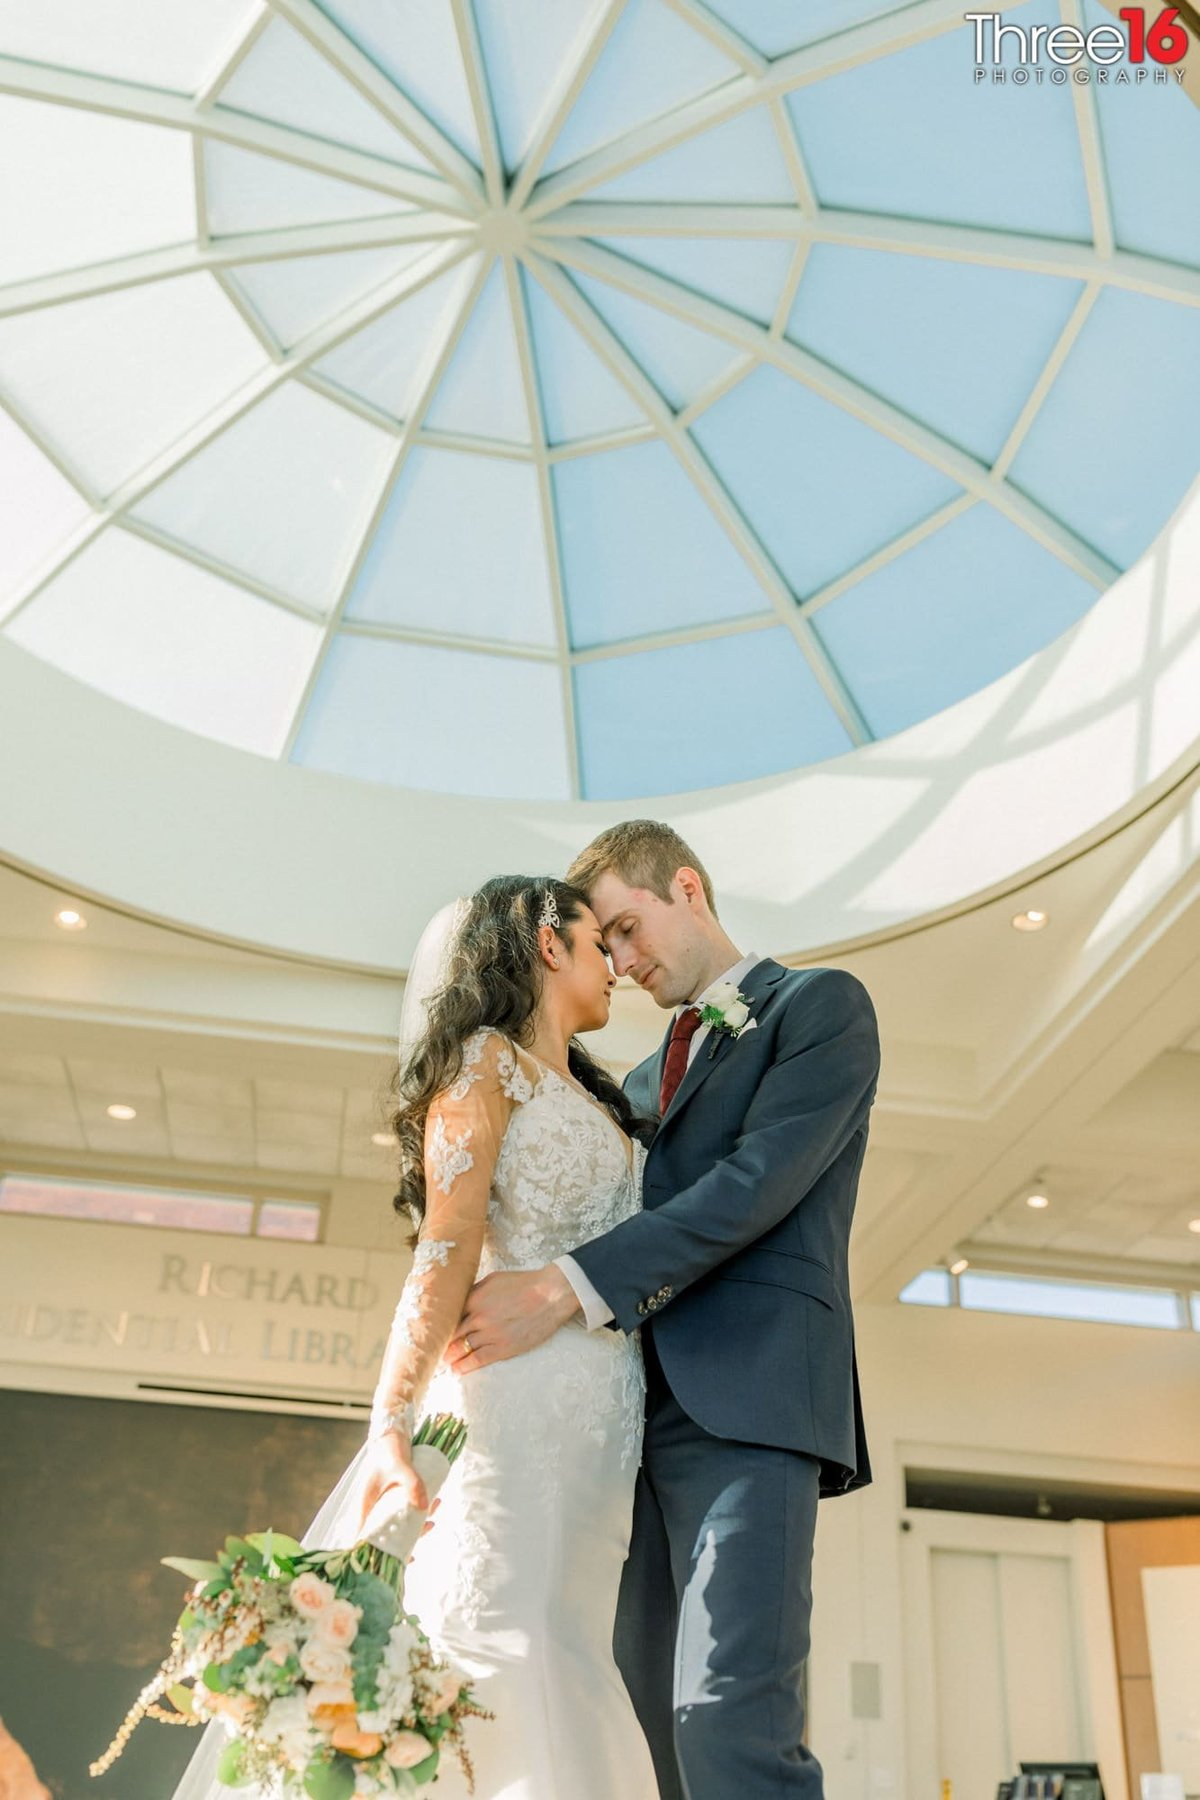 Bride and Groom embrace one another in the Richard Nixon Library lobby area